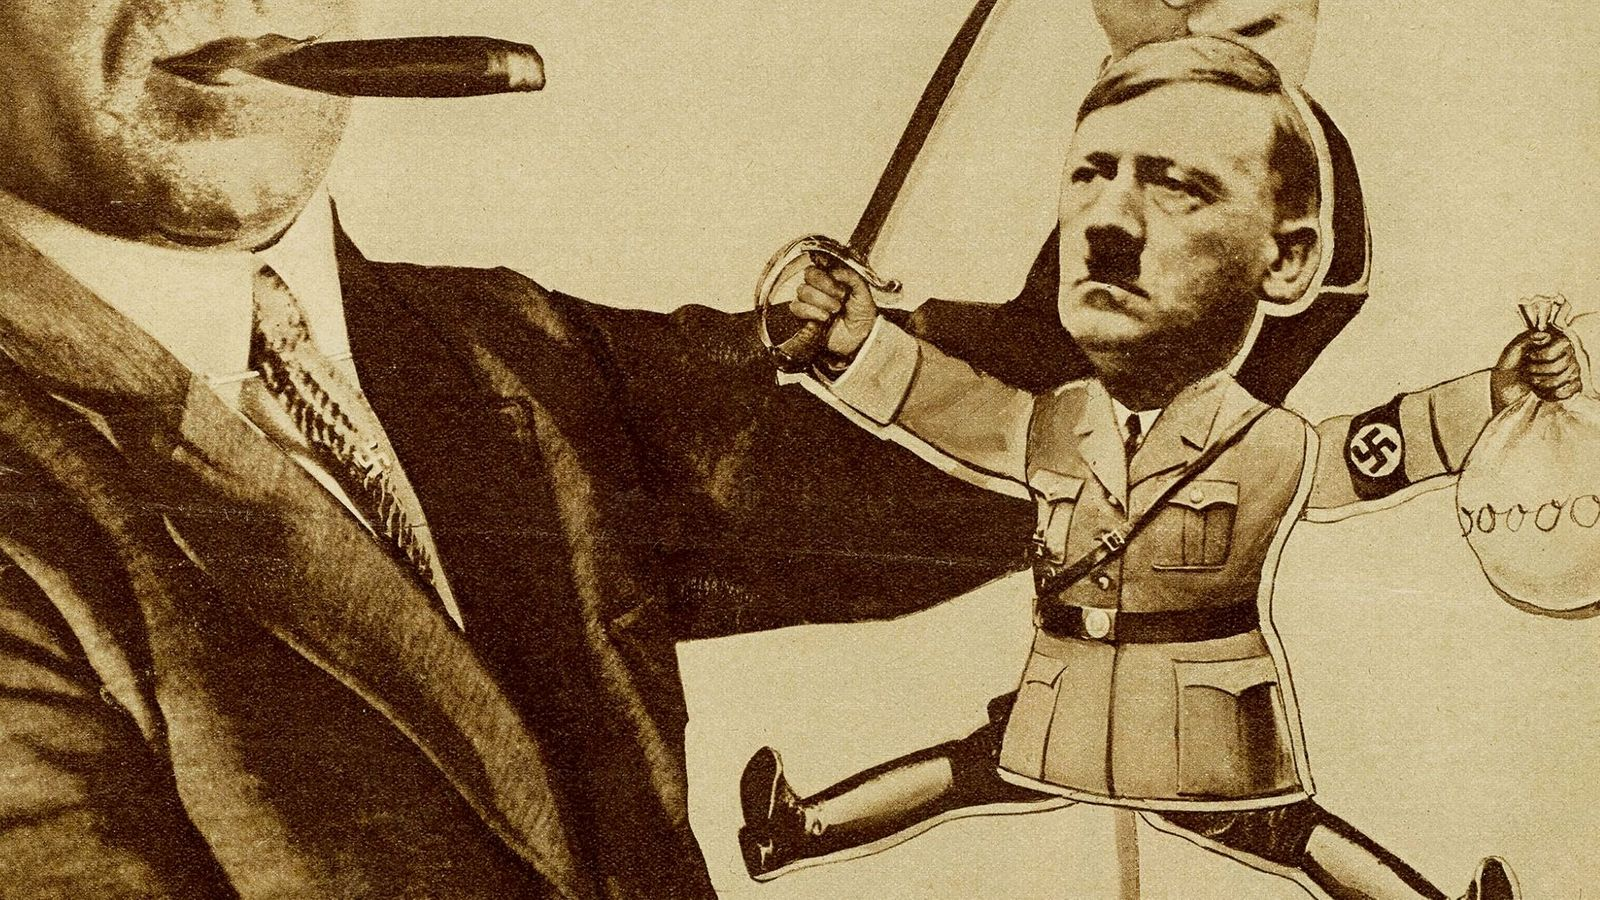 Illustrated comical black and white image of Hitler as the puppet of businessman Fritz Thyssen